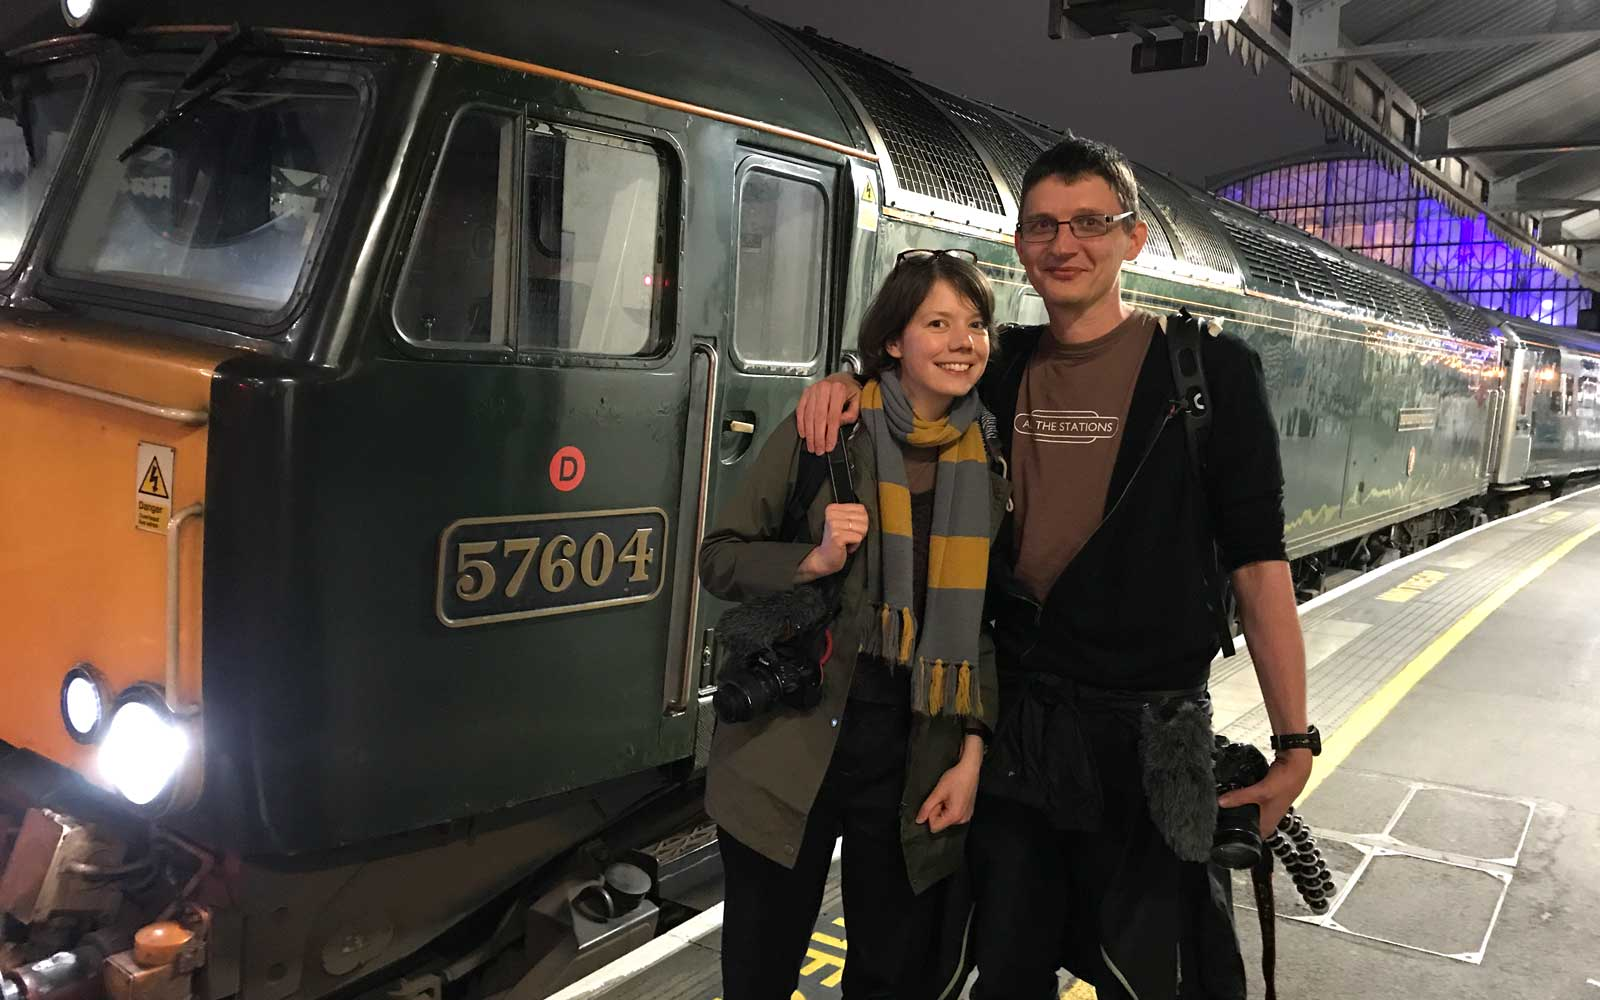 This Couple Is on a Mission to Visit All 2,563 Train Stations in Britain